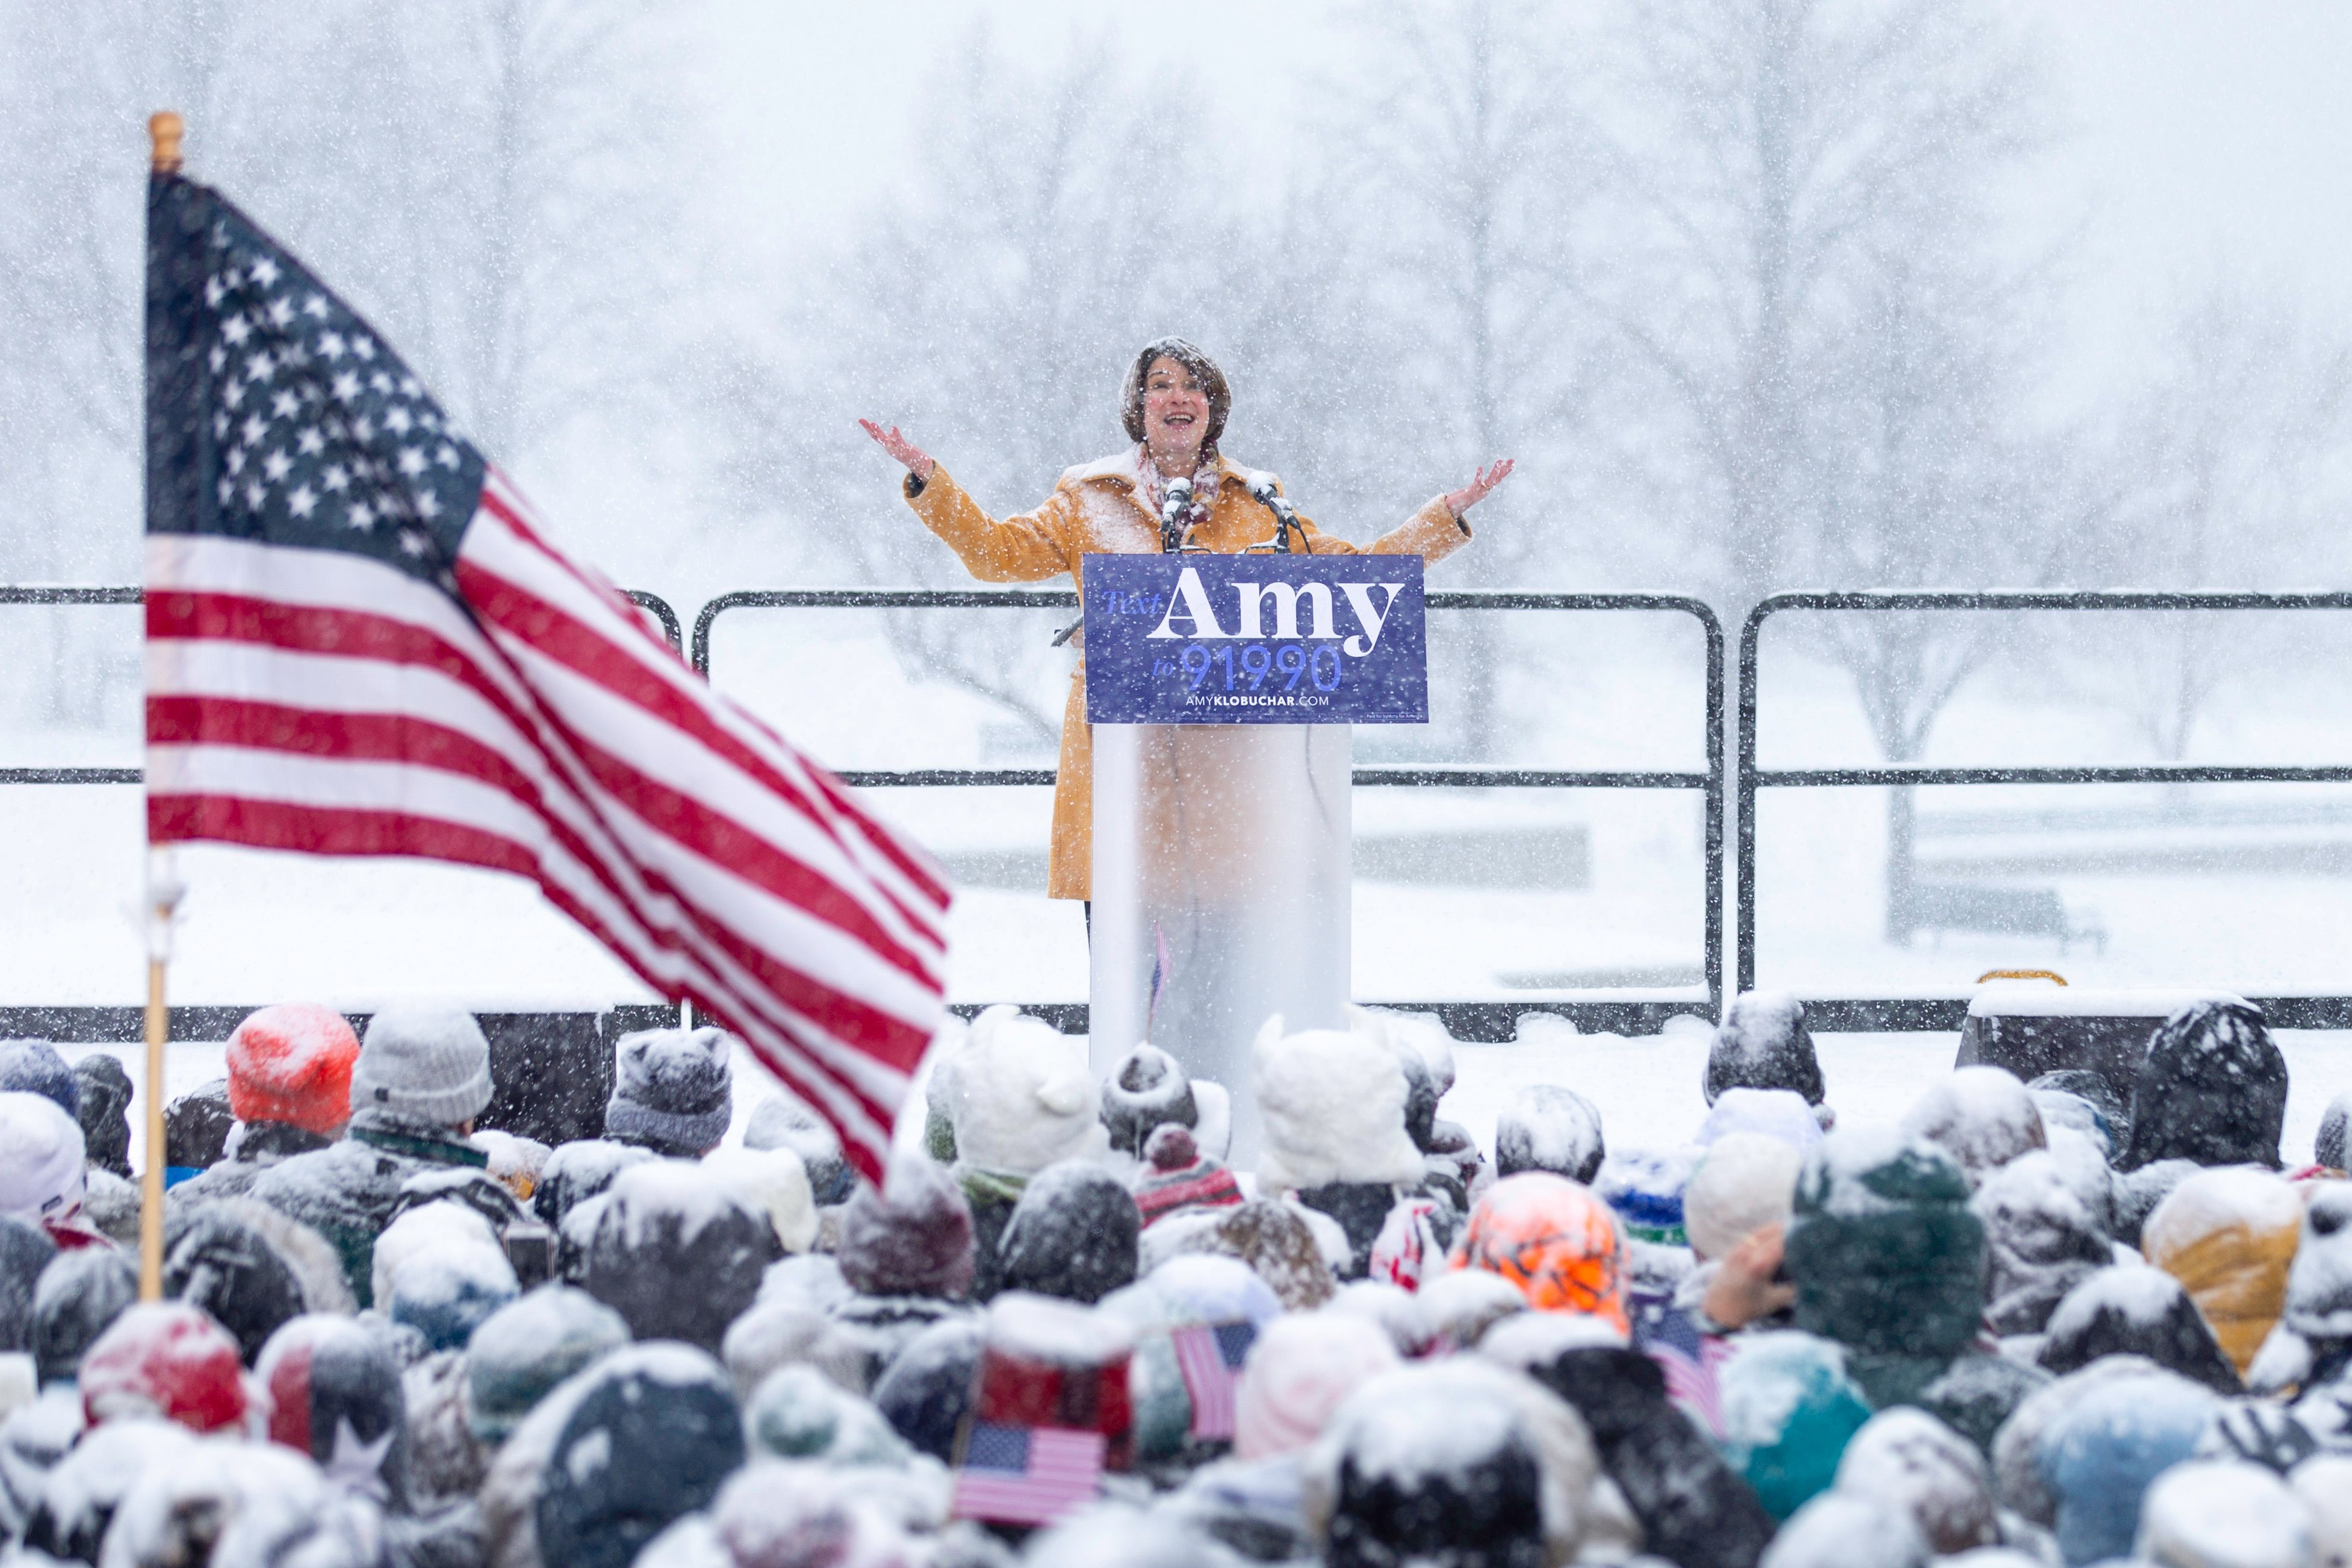 Amy Klobuchar launches her 2020 bid with a Wisconsin dig at Hillary Clinton